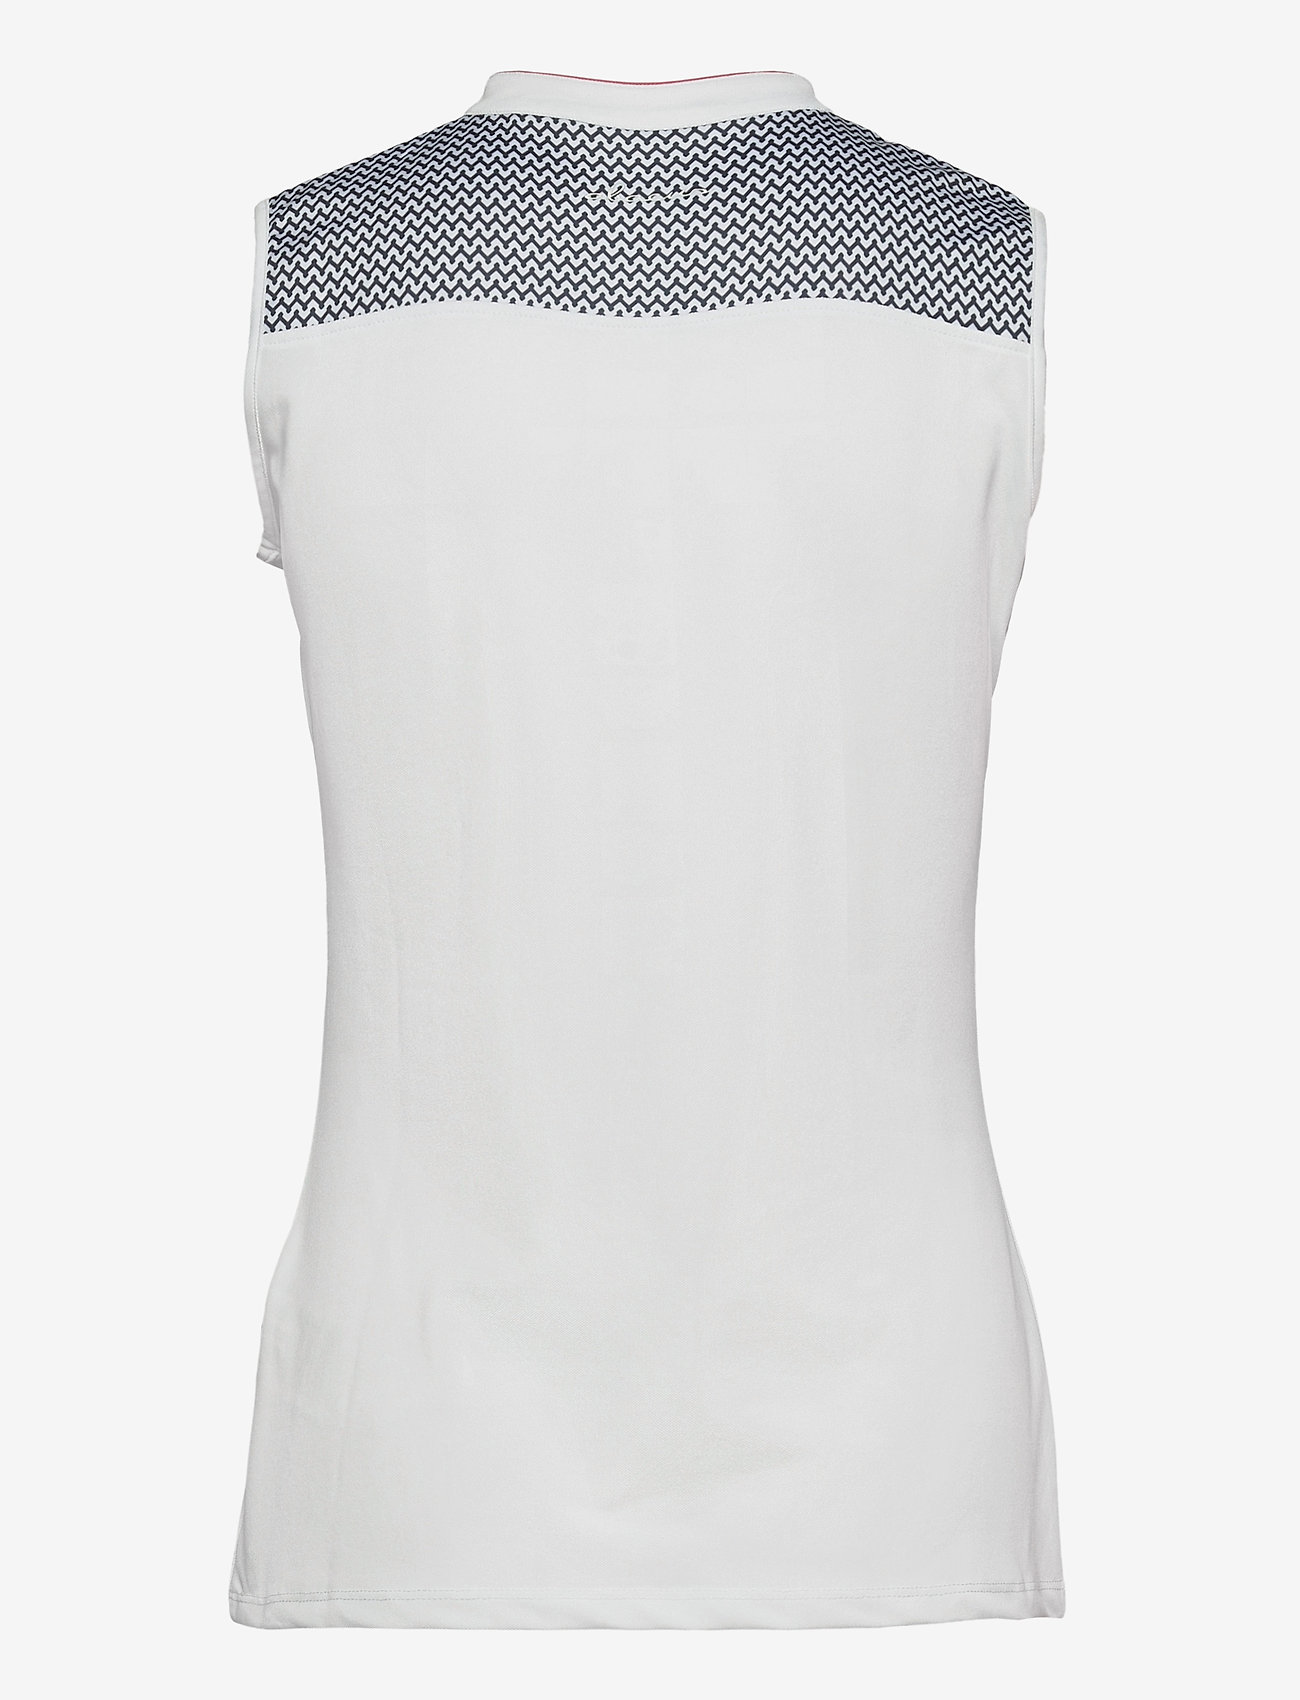 Abacus - Lds Anne sleeveless - topjes - navy/white - 1